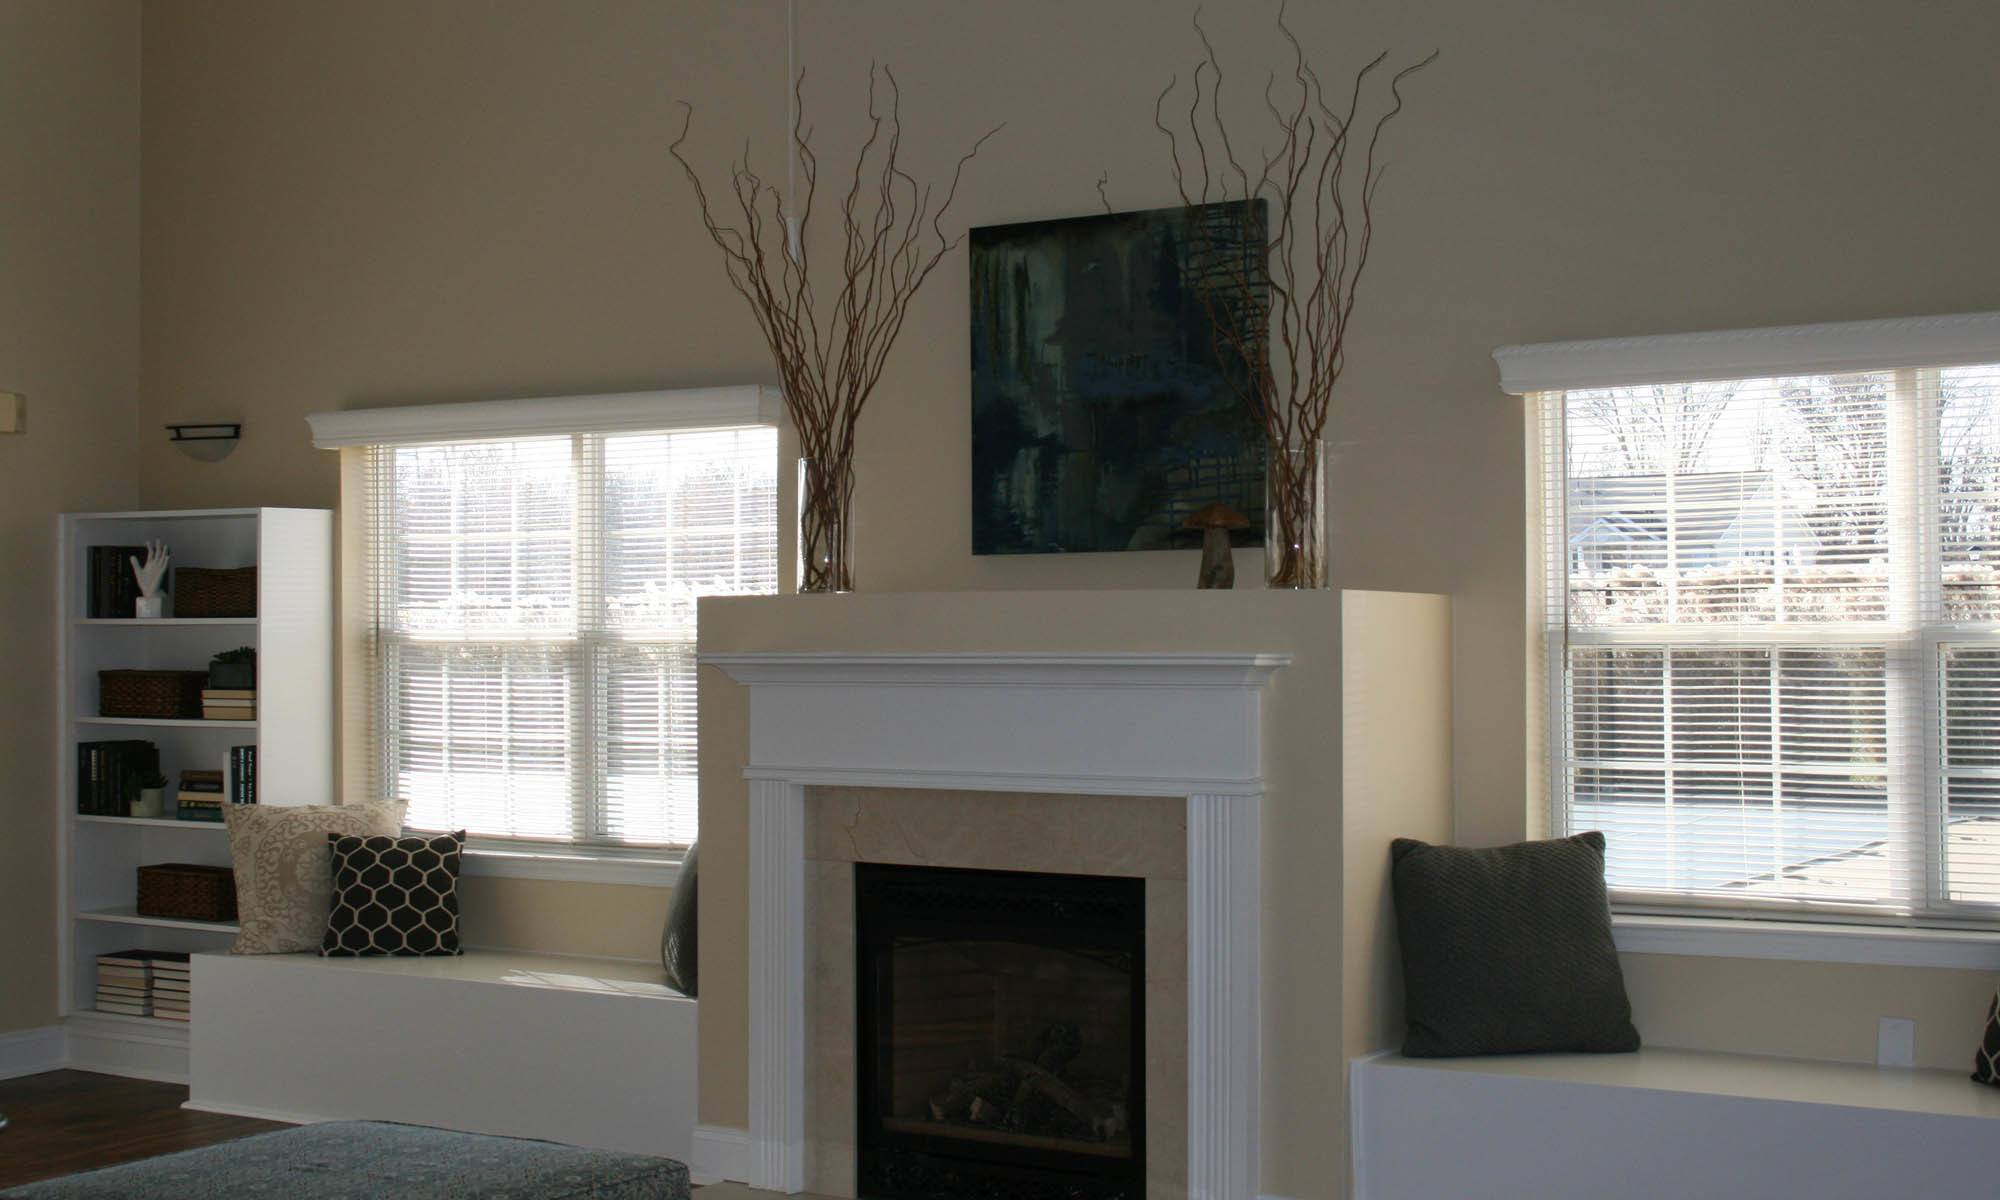 Glen Creek Apartments has fireplaces